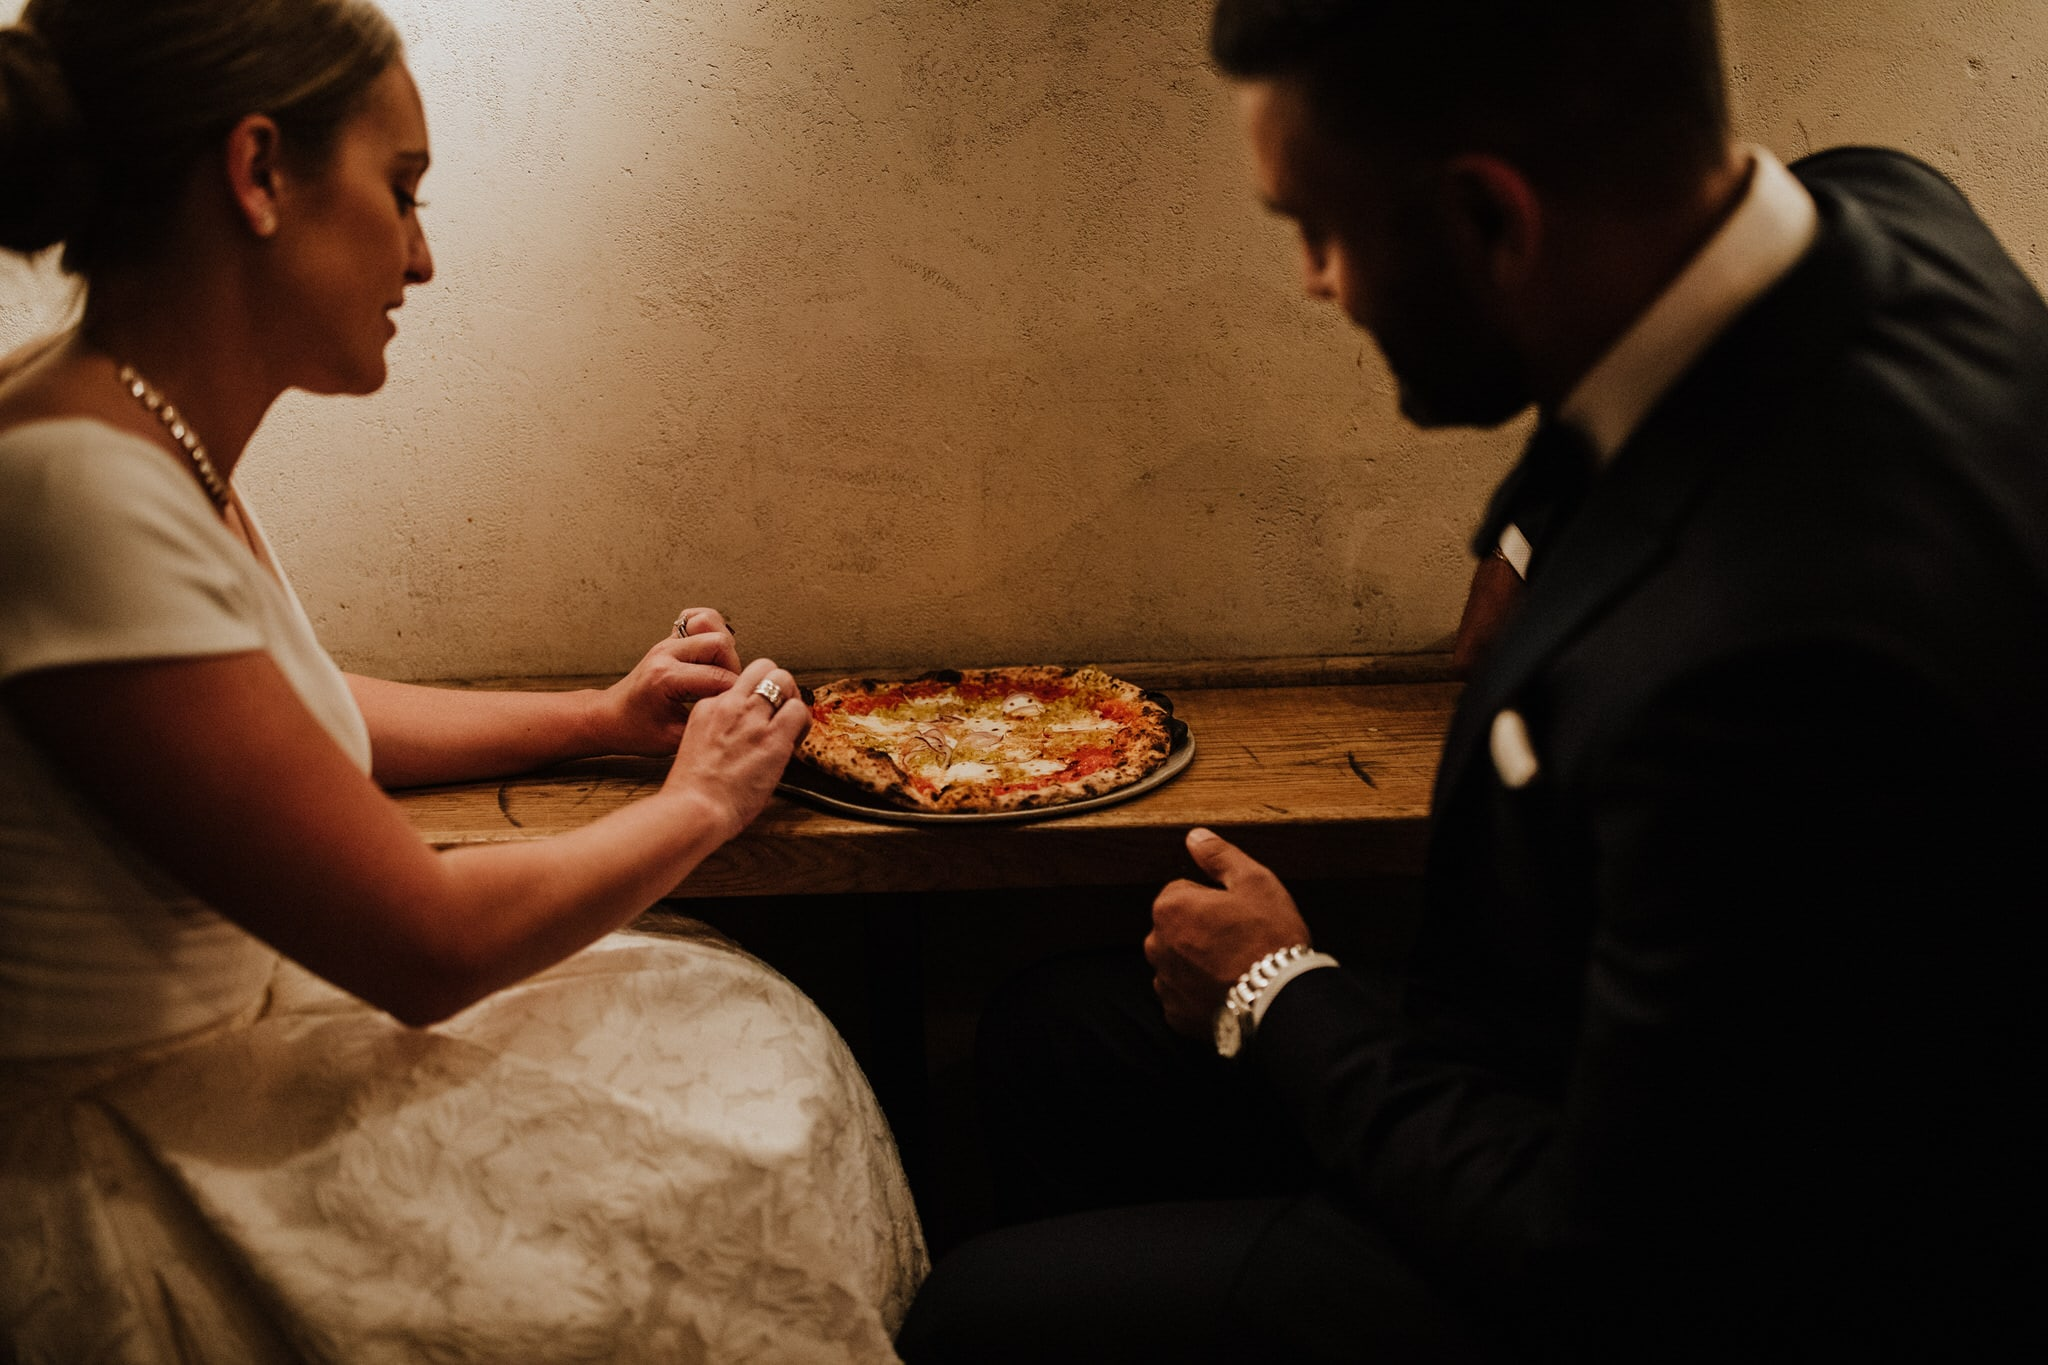 The bride and groom share Roberta's Pizza in New York City. Wedding Photographer Brent Calis.